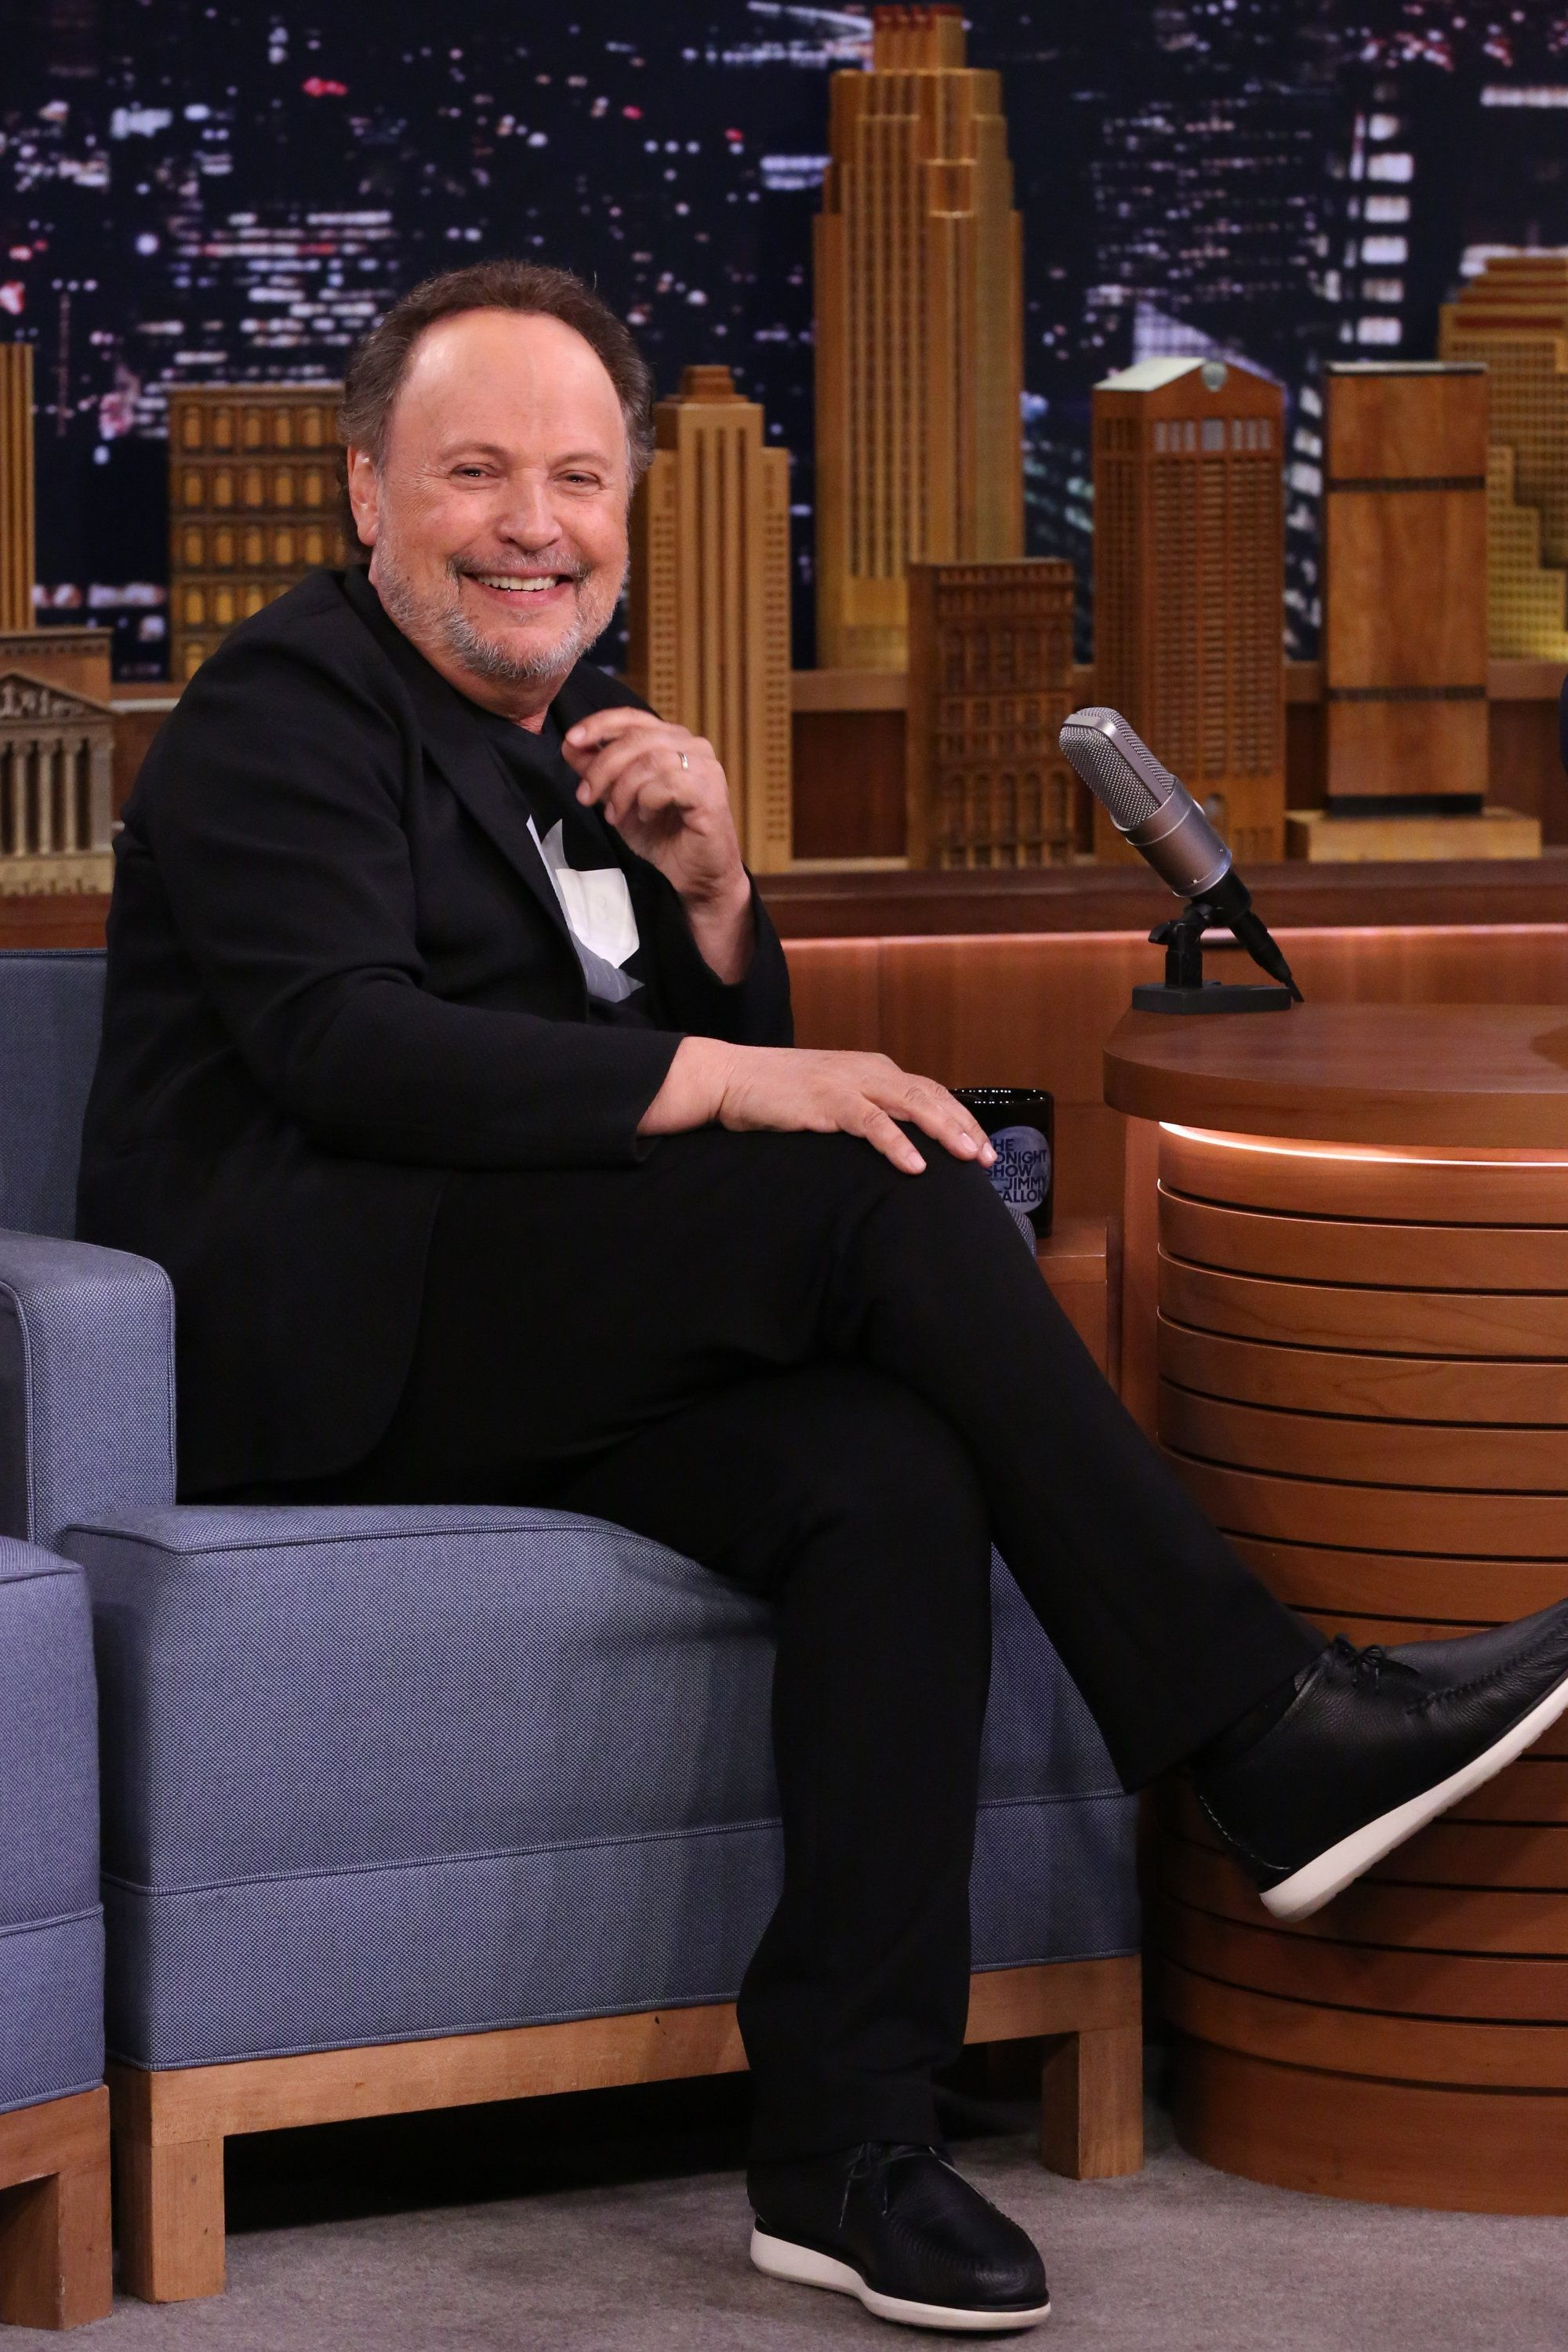 THE TONIGHT SHOW STARRING JIMMY FALLON -- Episode 0721 -- Pictured: Actor Billy Crystal during an interview on August 8, 2017 -- (Photo by: Andrew Lipovsky/NBC/NBCU Photo Bank via Getty Images)